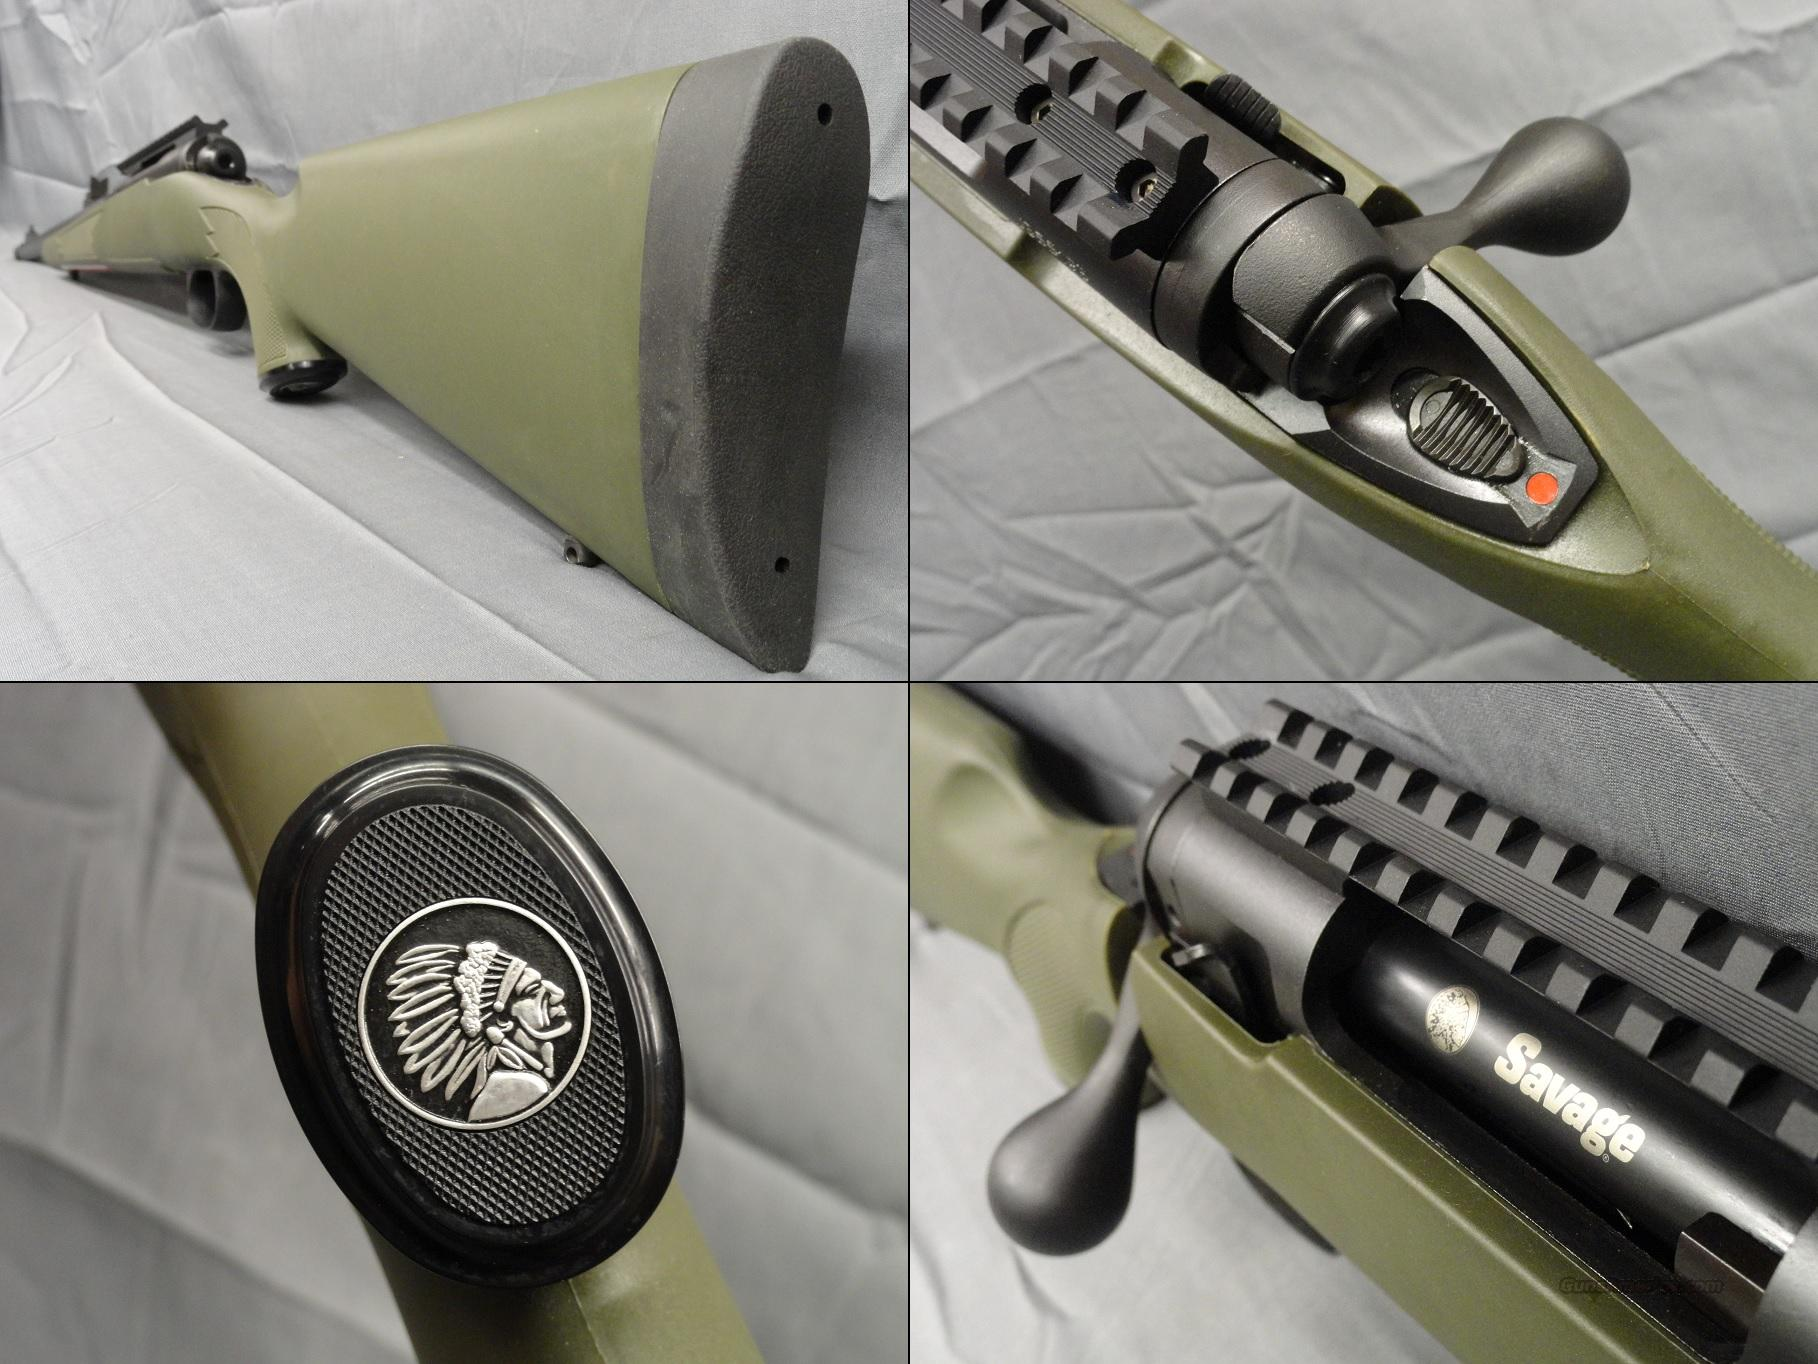 110 Bolt Action Savage Fcp